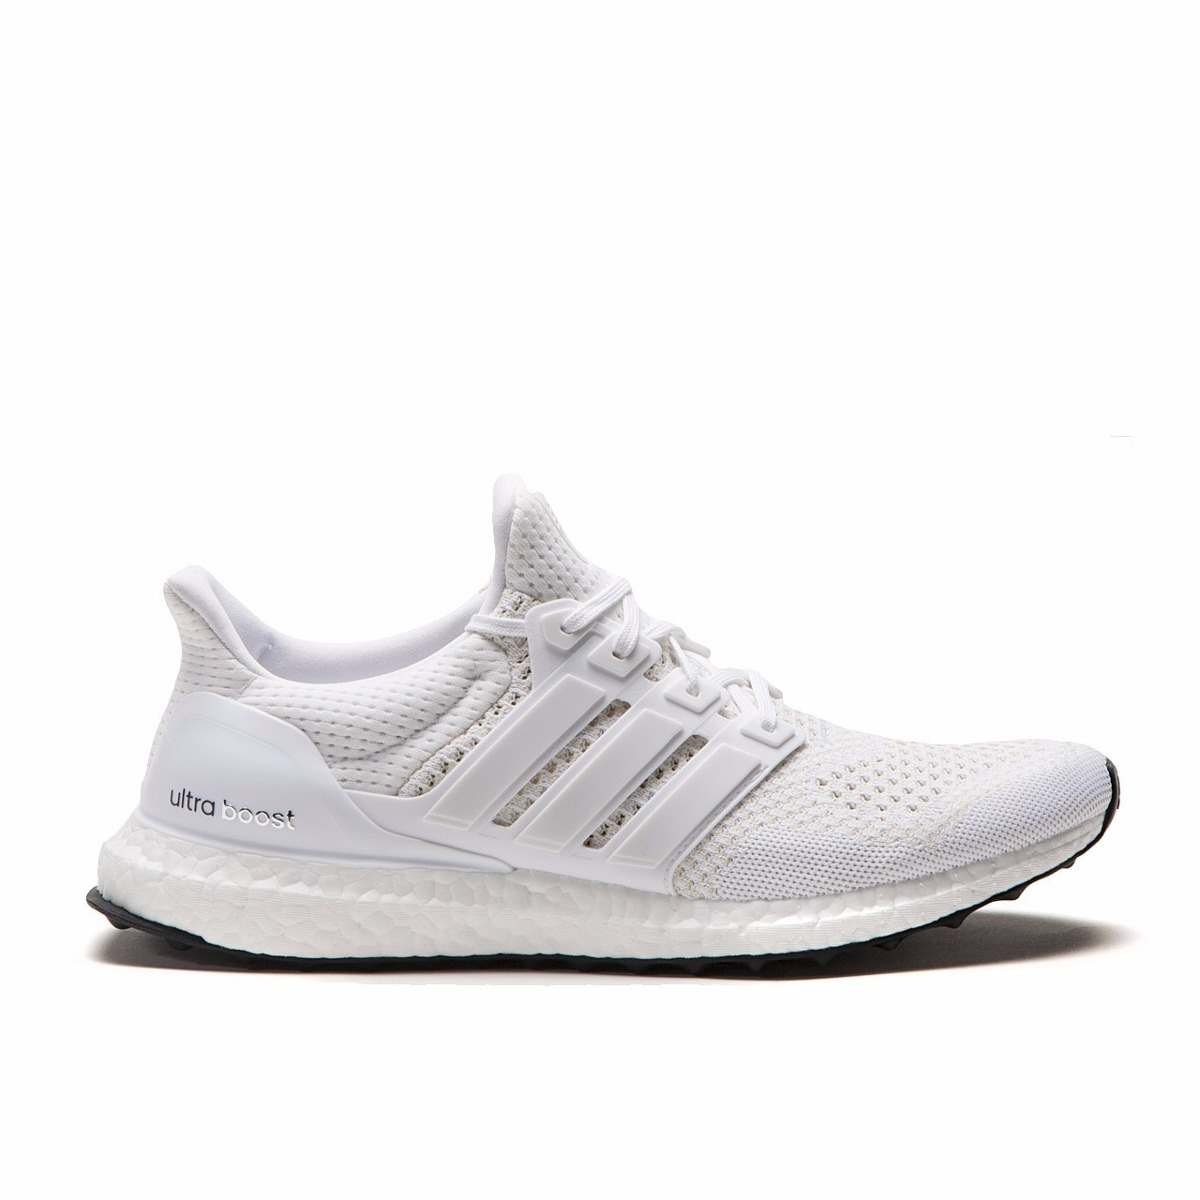 Best Adidas Turbo Boost Triple White Envo Gratis Cargando Zoom 91c96 157d2